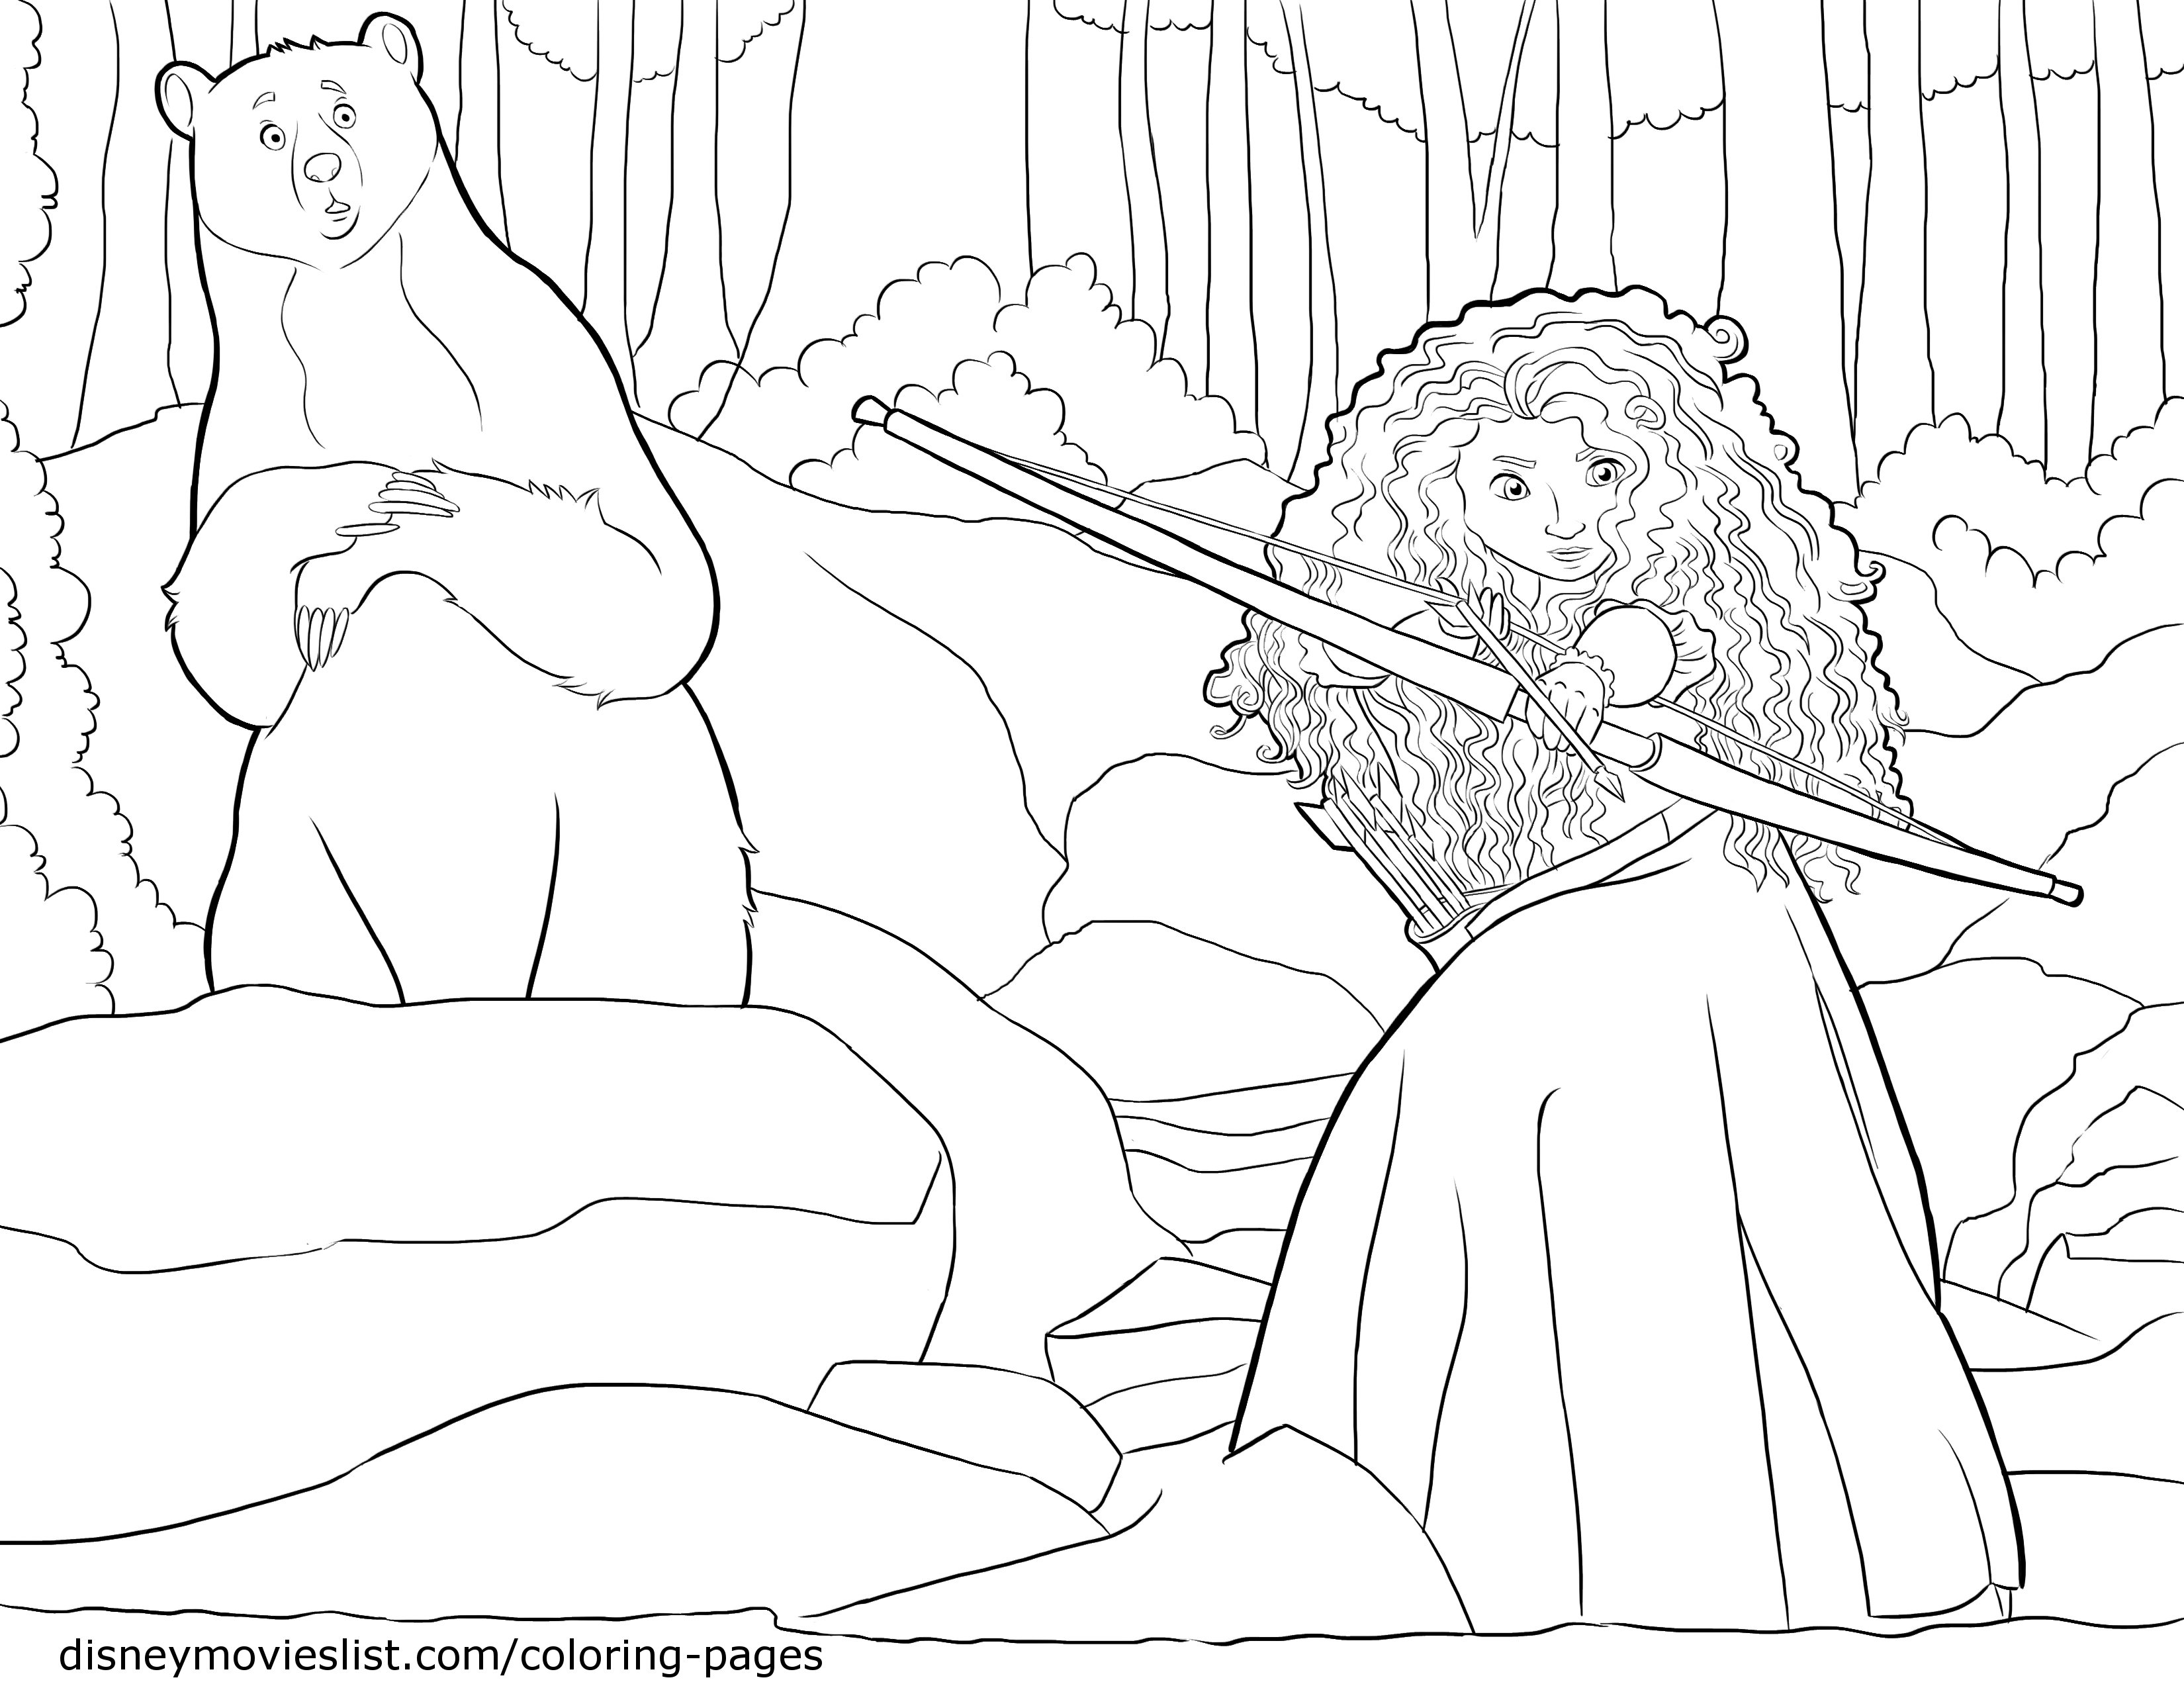 Merida in to the woods with her Mom Bear